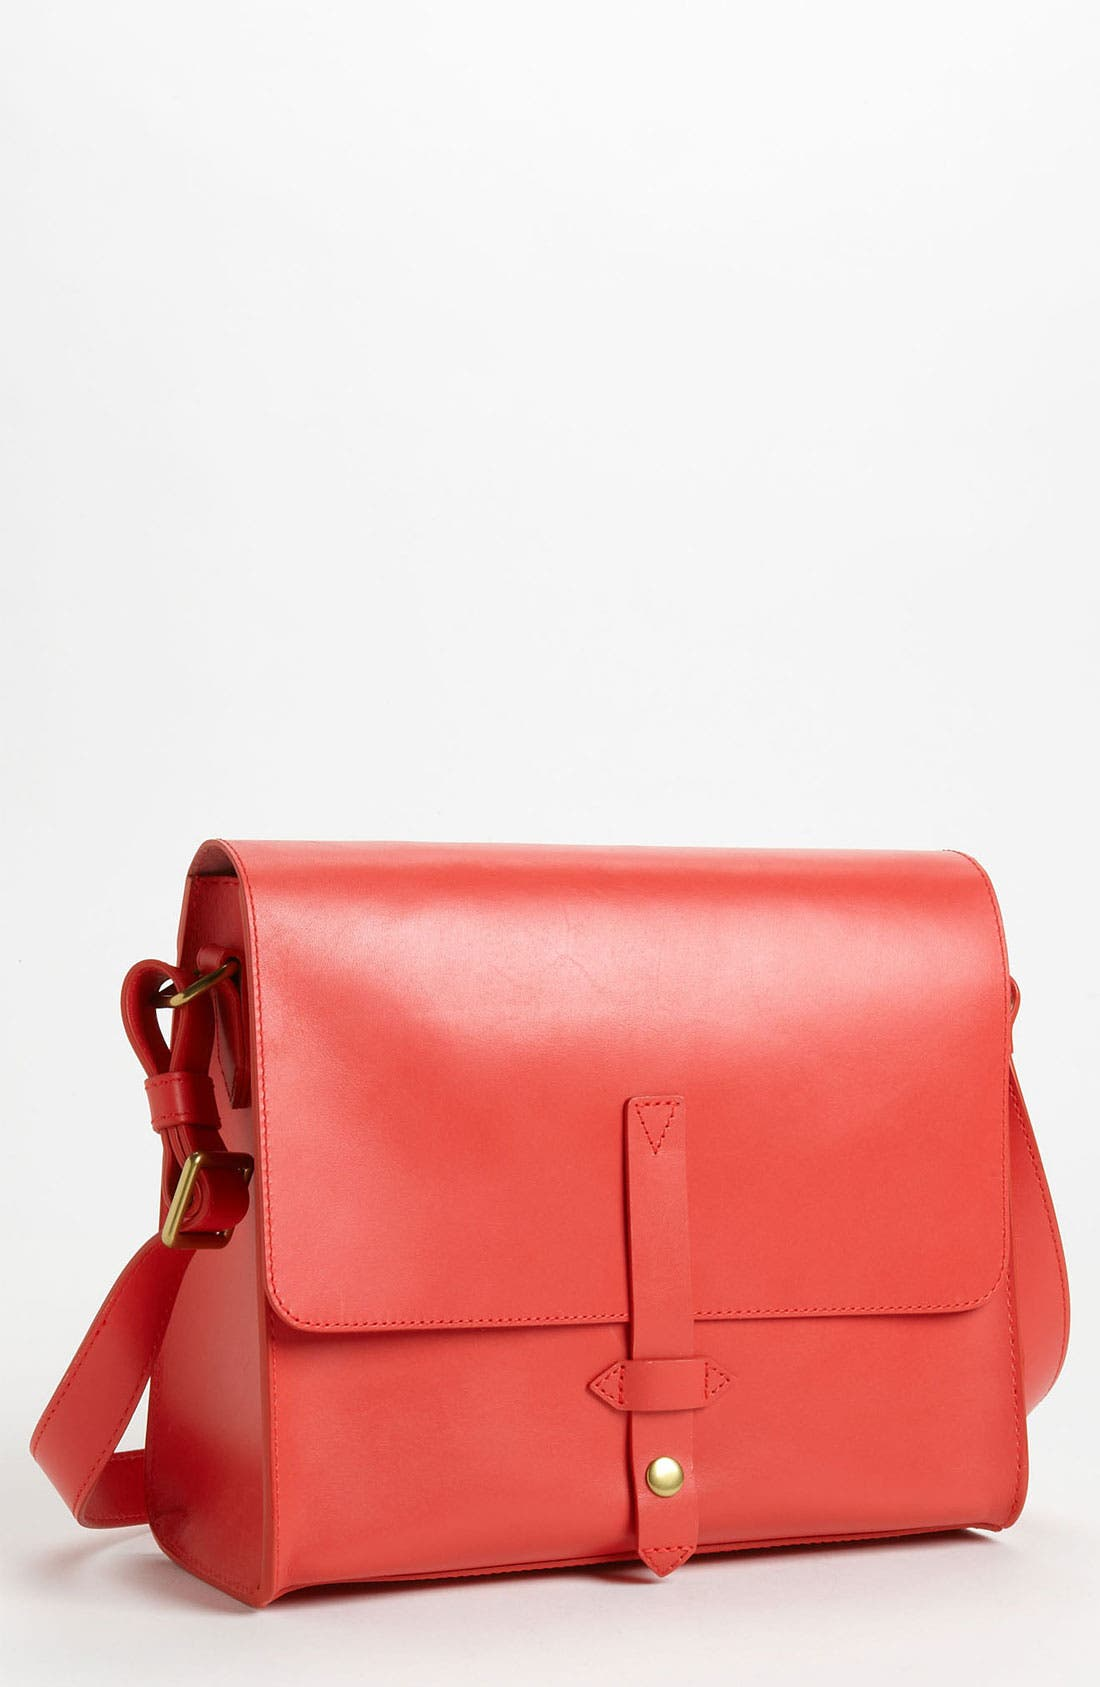 Alternate Image 1 Selected - IIIBeCa By Joy Gryson 'Duane' Crossbody Bag